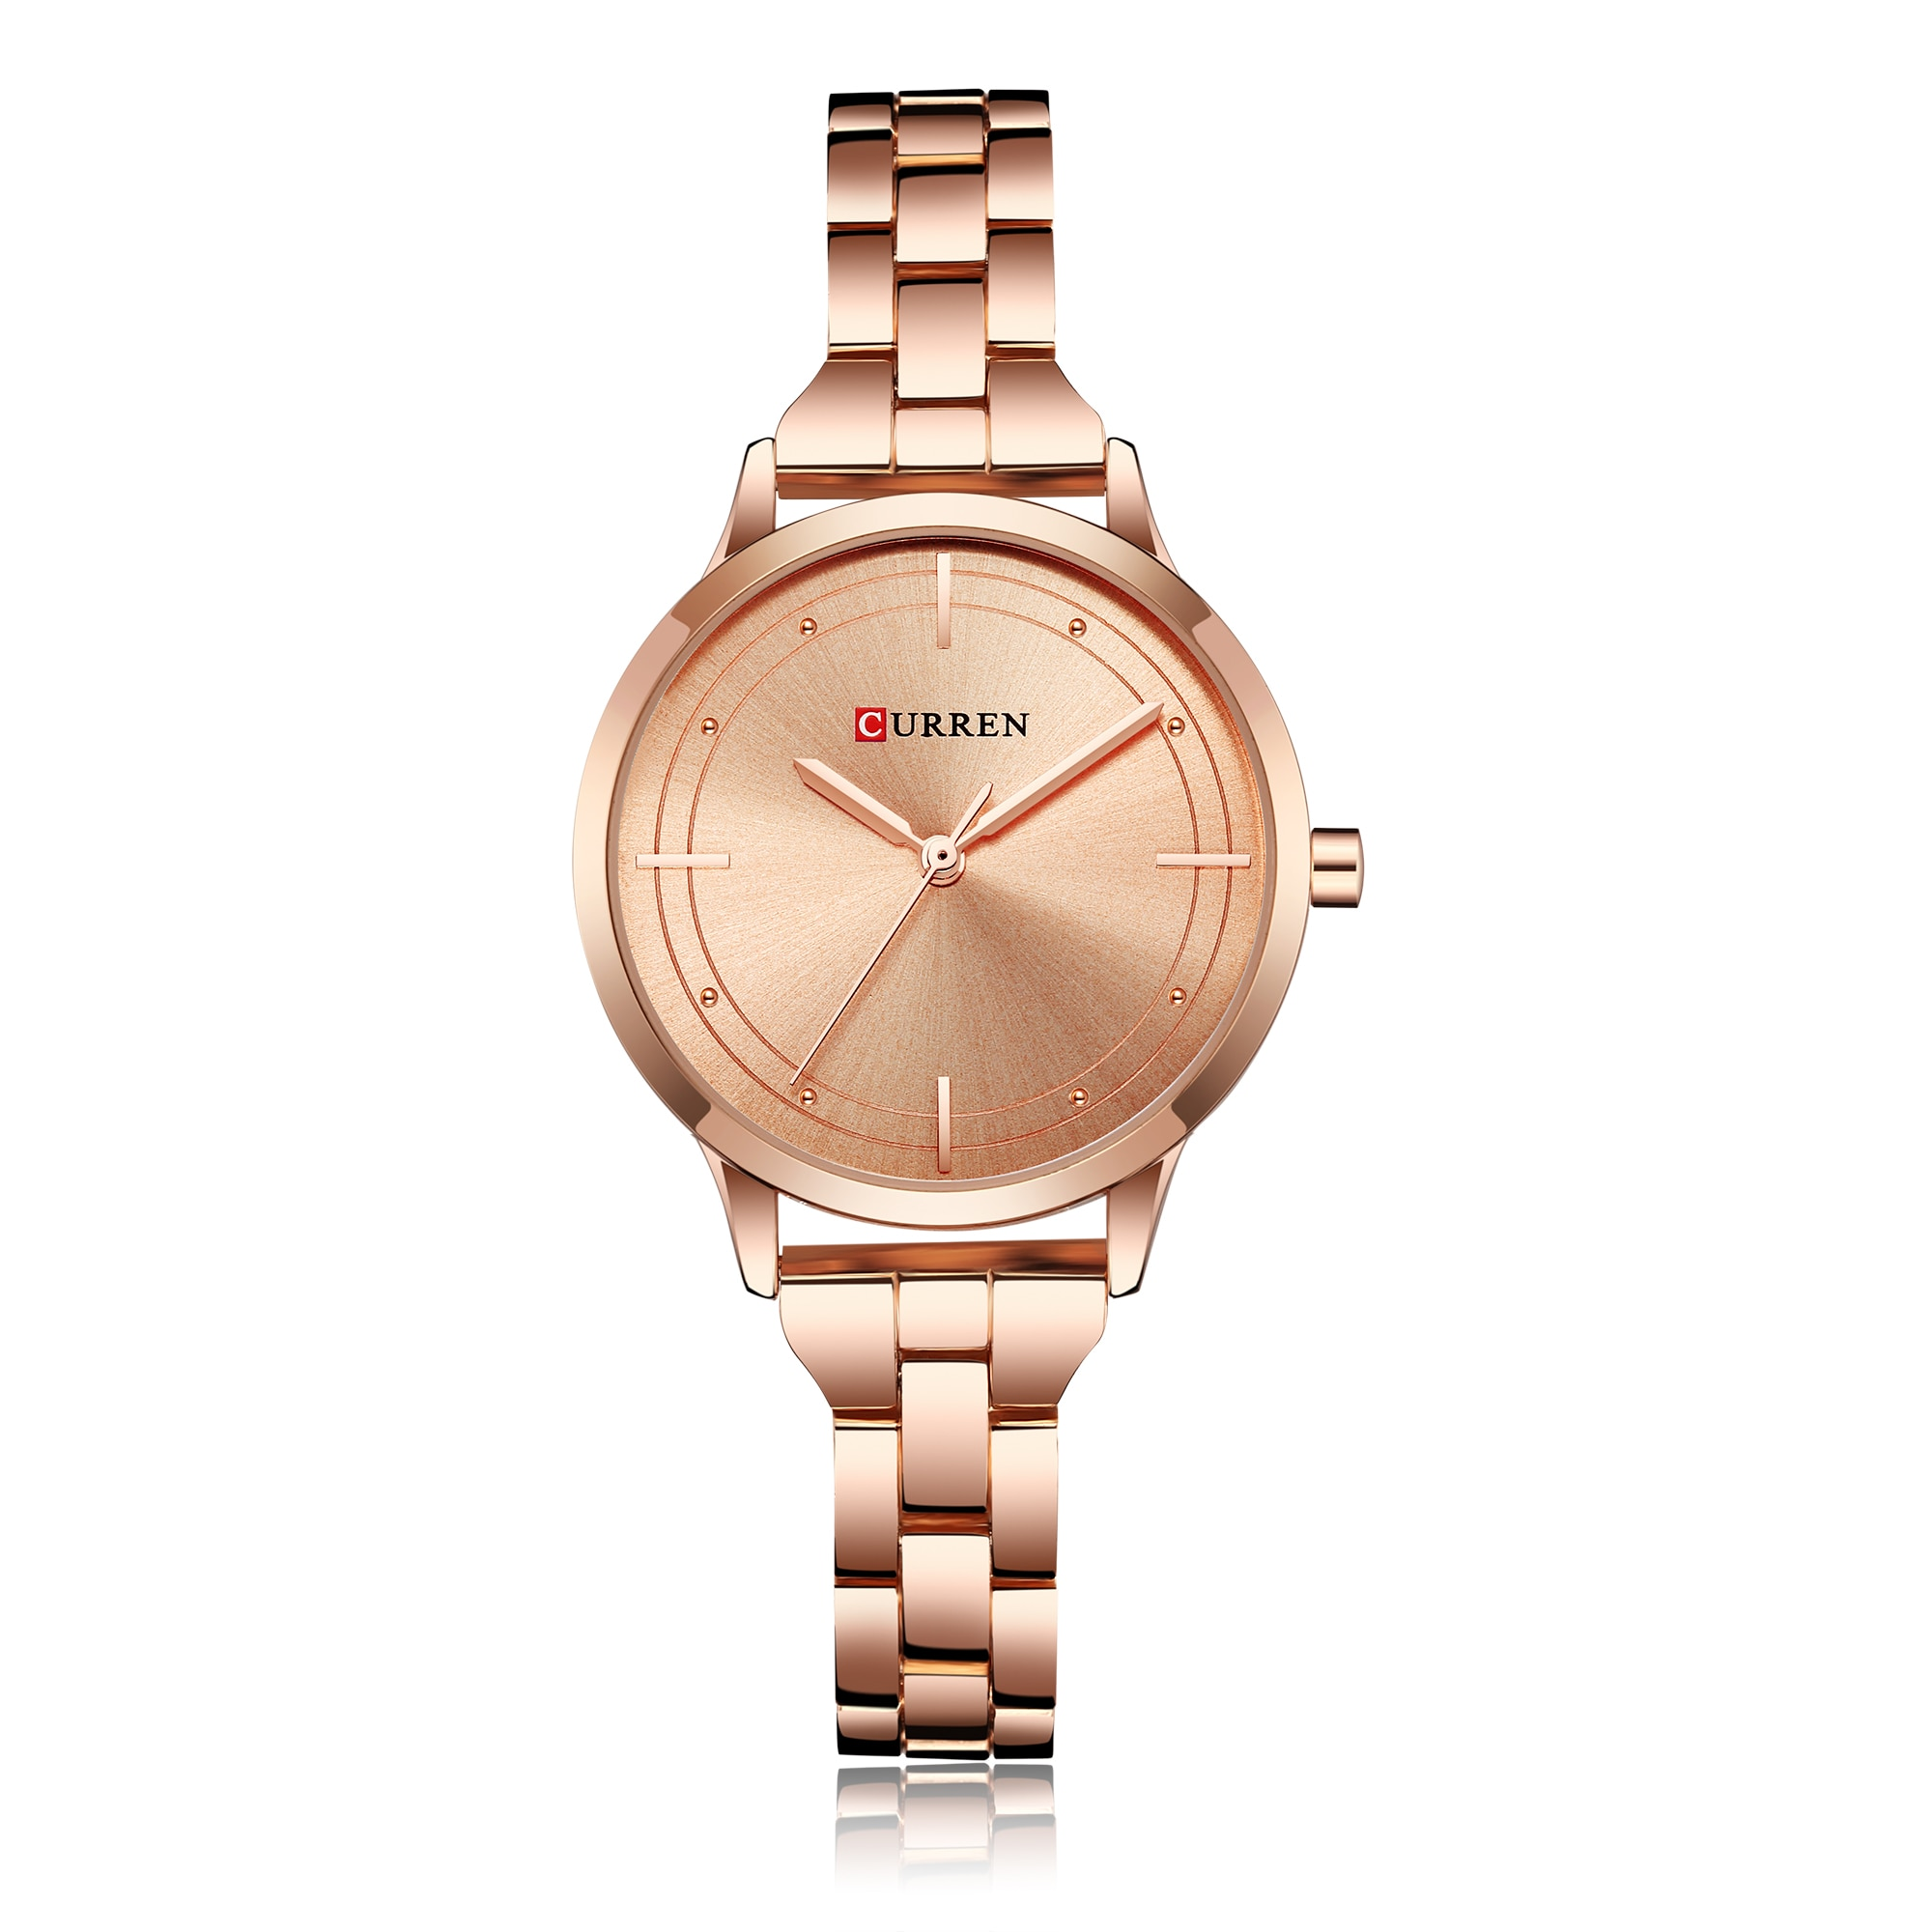 CURREN Reloj Women Watches 2019 Classic Fashion Female Watch Rose Gold Stainless Steel Wristwatches Water Resistant Montre Femme enlarge